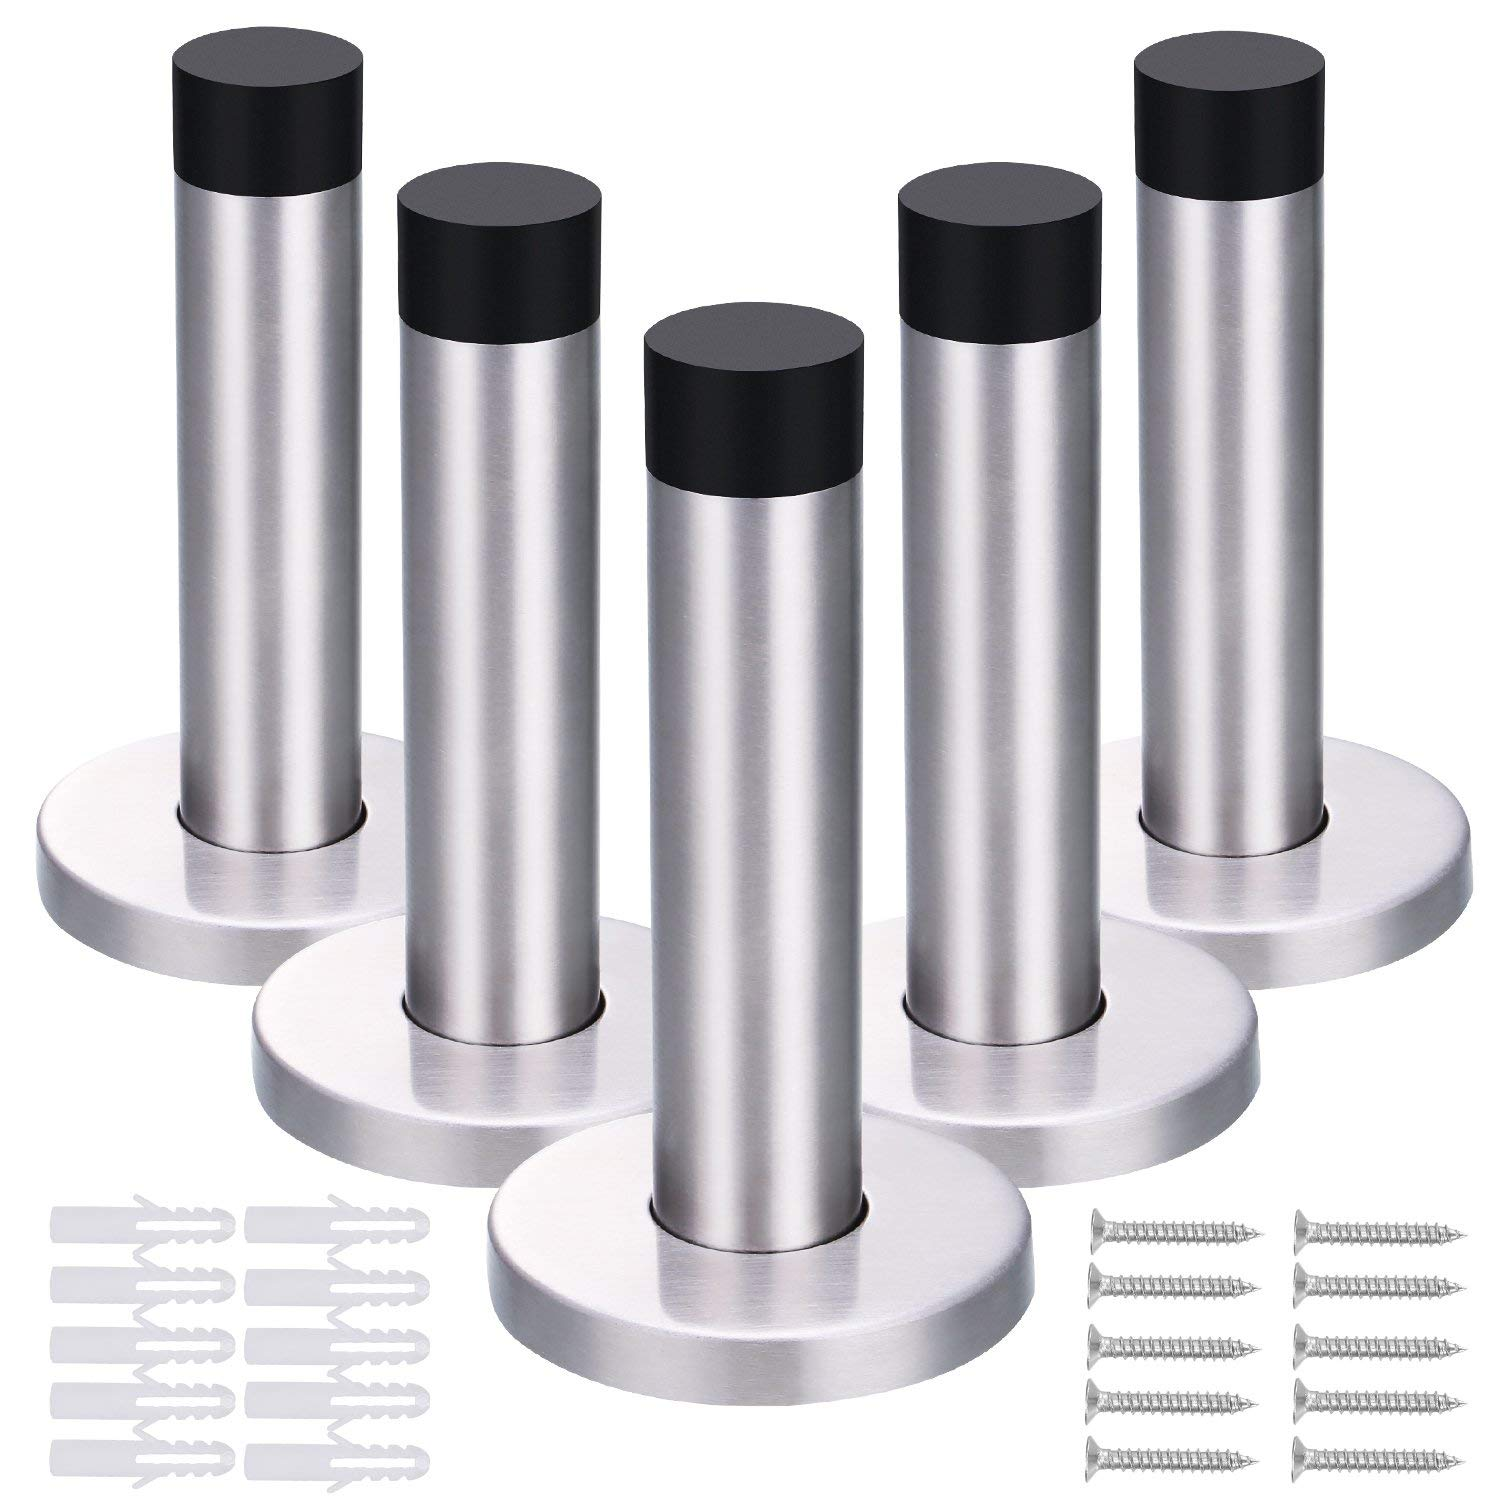 5 Pack 90 mm Door Stop 304 stainless steel Door Stopper Holder with Screws and Drywall Anchors